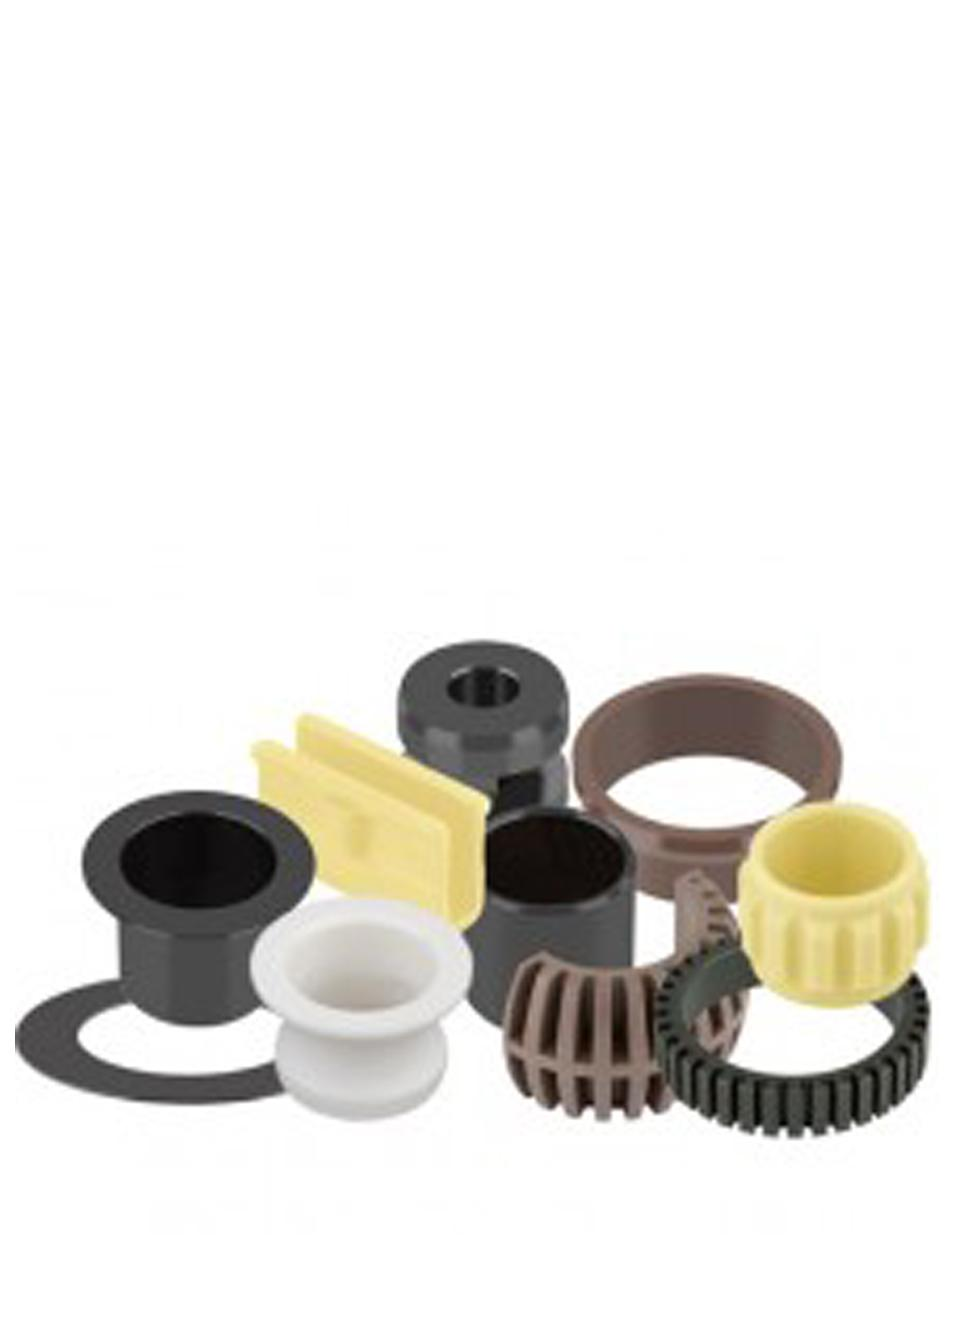 GGB and Globalspec presents a webinar on GGB's Engineered Plastic Bushings